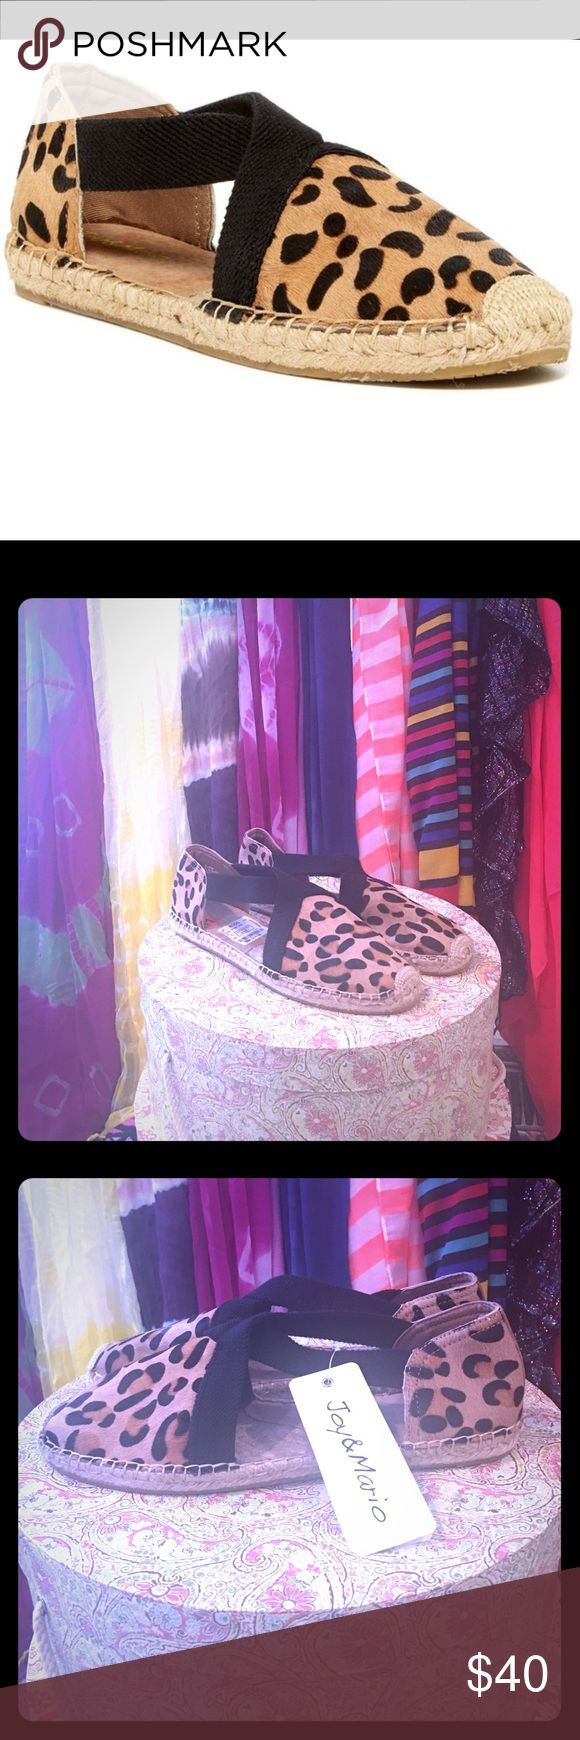 Joy & Mario Leopard Espadrilles These Joy & Mario Espadrilles are new with tag. They are truly lovely. The shoe is leather, with the exception of the straps and the trademark espadrilles soles. The leopard print is calf hair. Joy & Mario Shoes Espadrilles